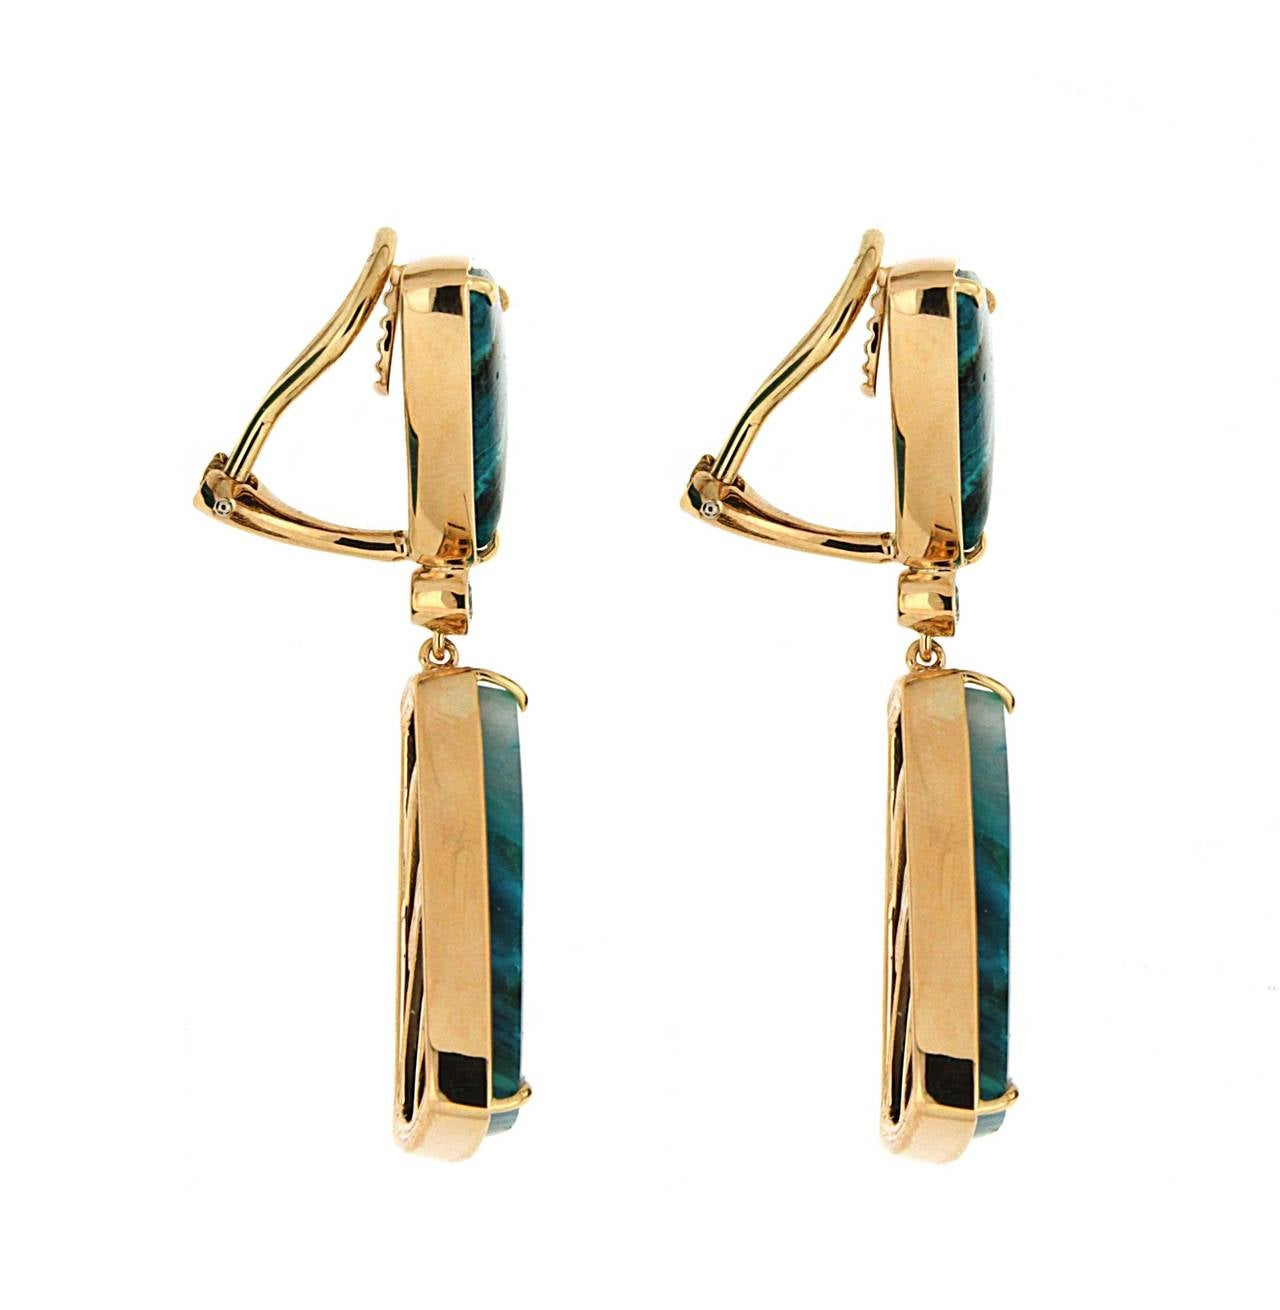 This unique pair of earrings features special cut Chrysocolla Malachite and round brilliant diamonds. The earrings are finished in 18kt Yellow Gold with clip backs.